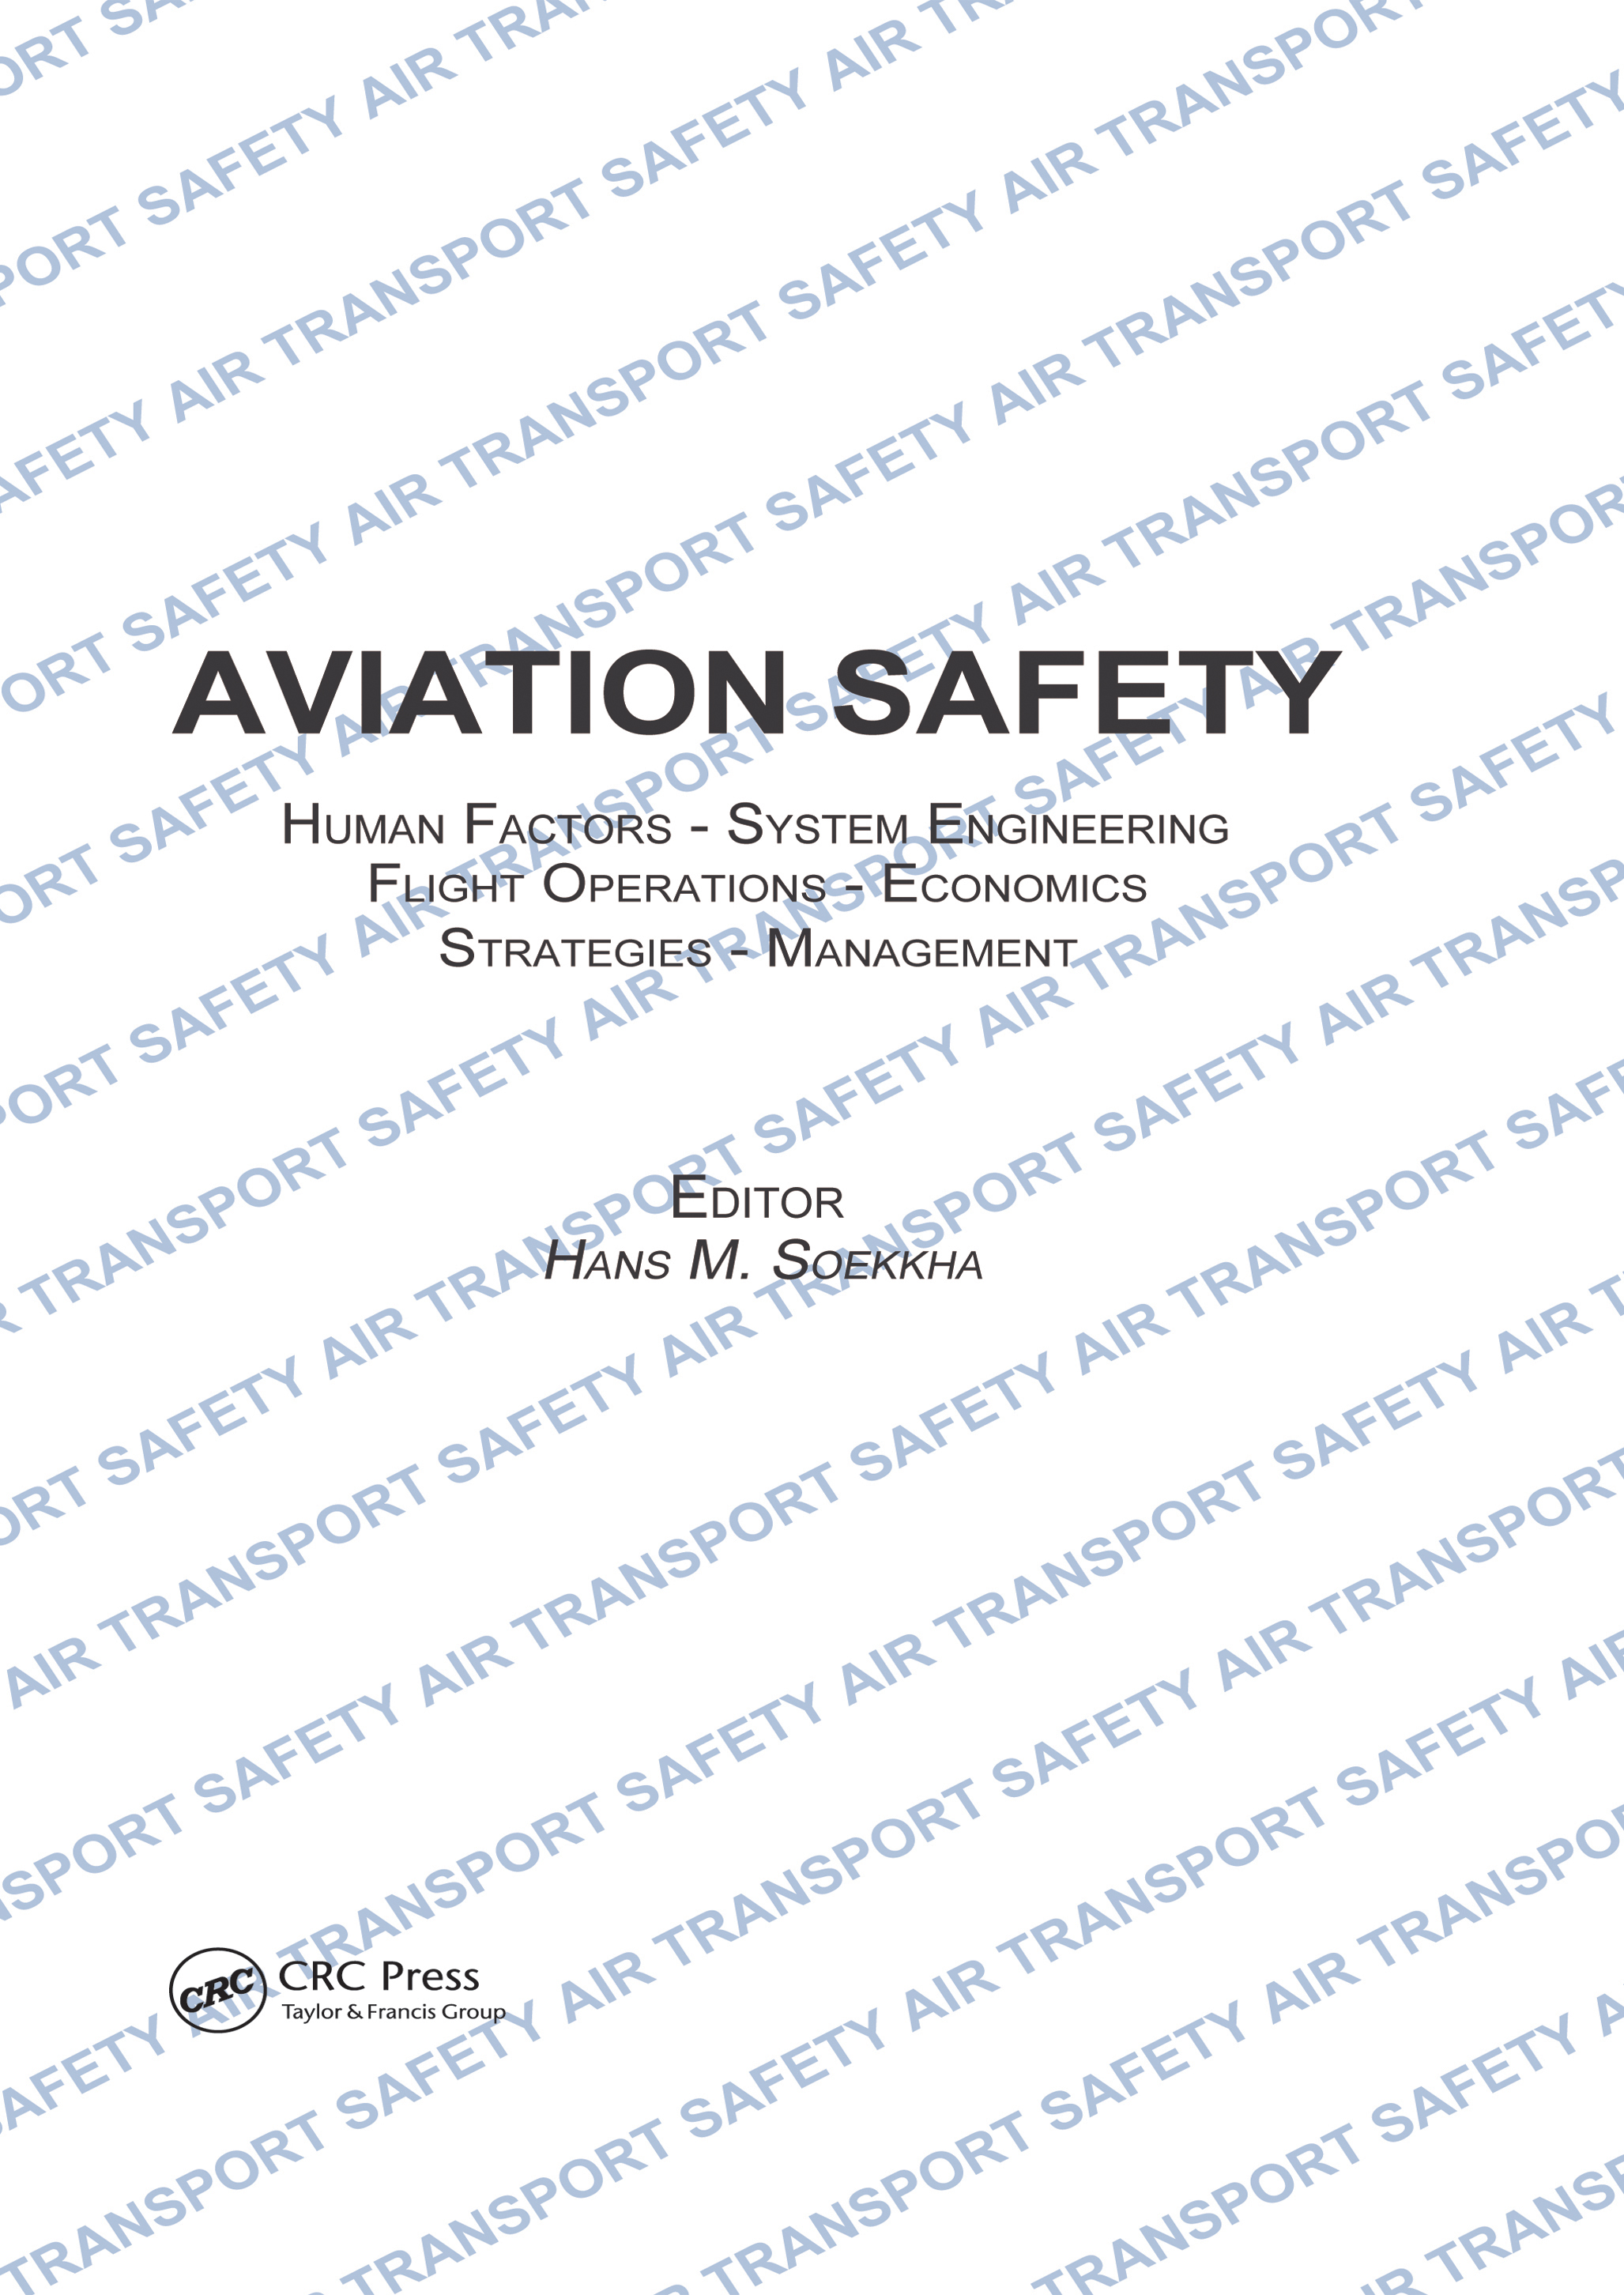 Aviation Safety, Human Factors - System Engineering - Flight Operations - Economics - Strategies - Management